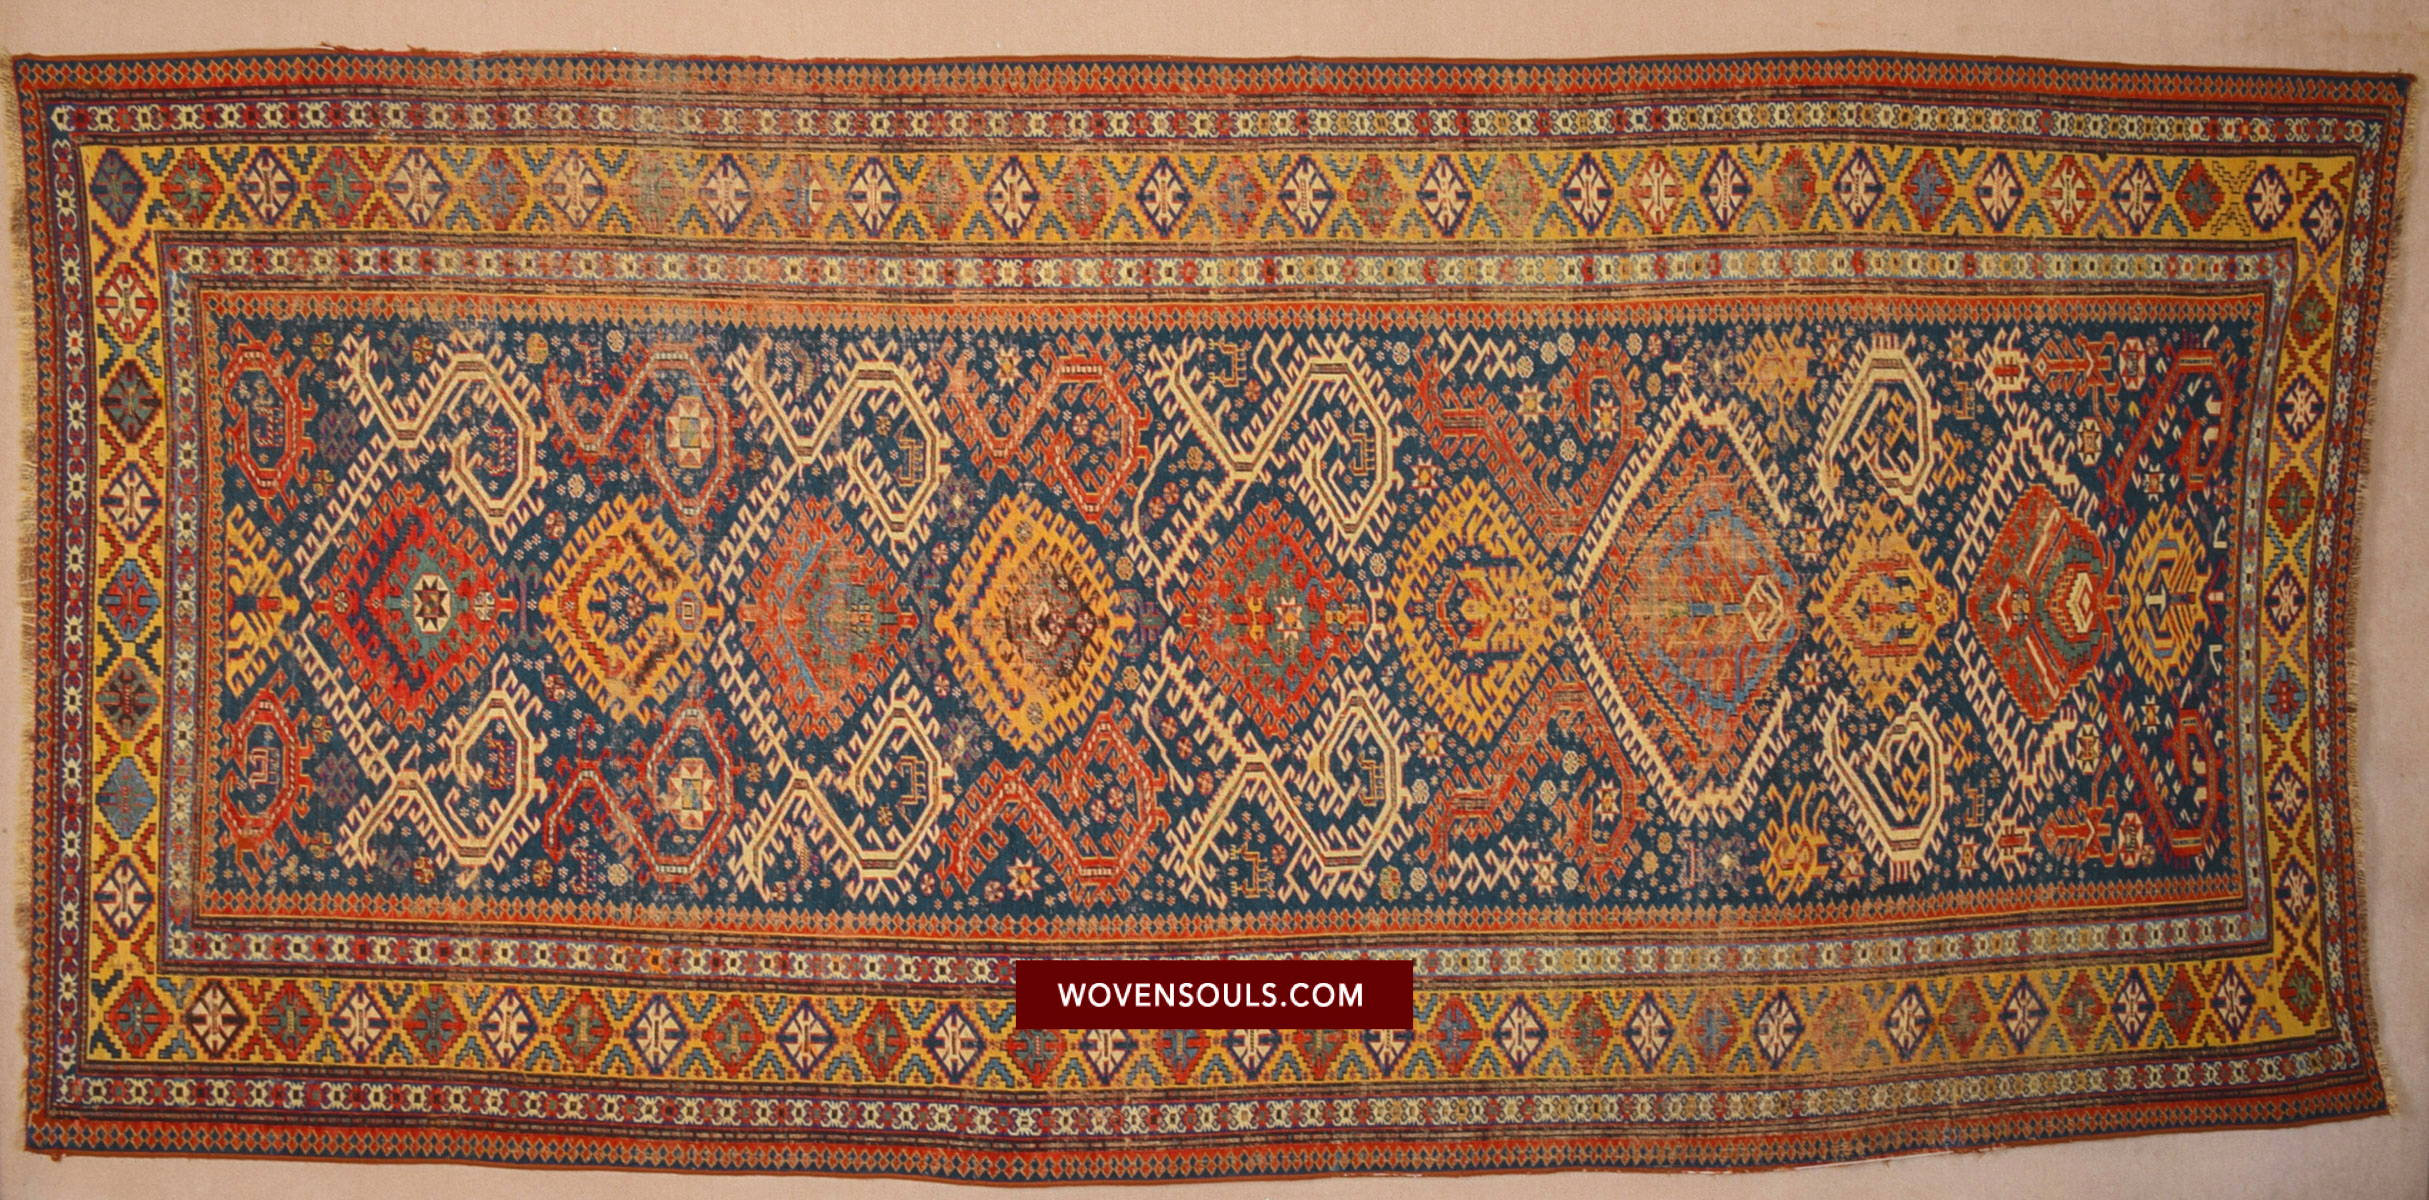 ANTIQUE DRAGON SUMAC SOUMAC RUG CARPET